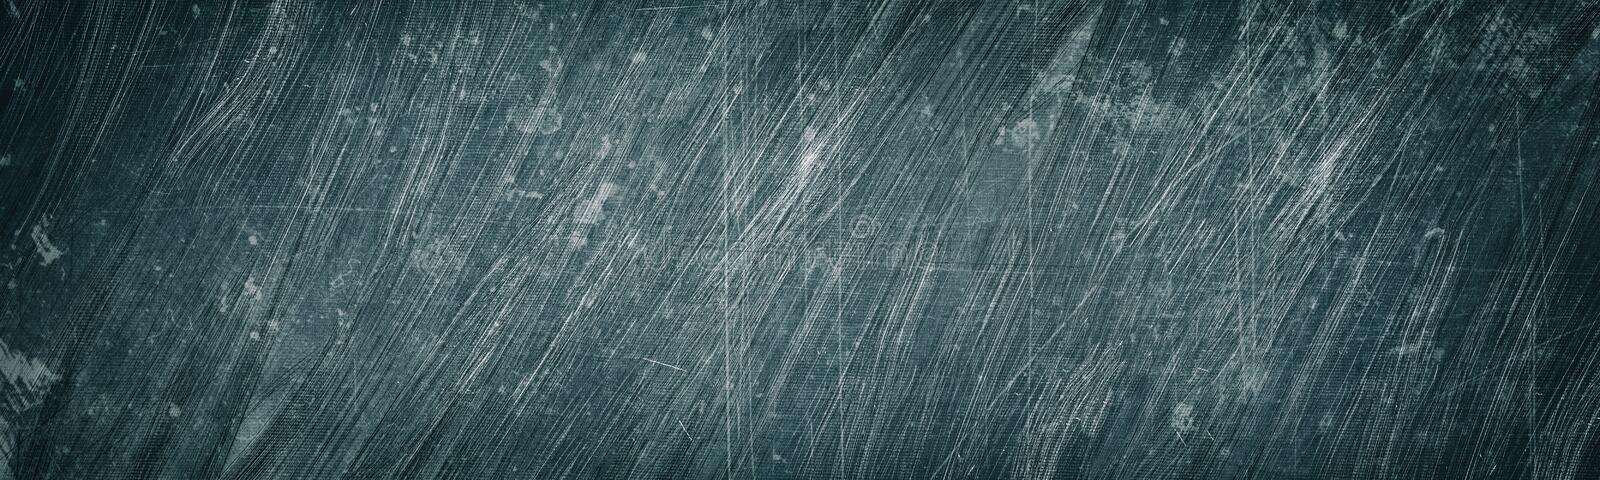 Aged gray scratched and stained metal wide texture. Shabby metallic surface panorama. Dark retro grunge panoramic background stock photos